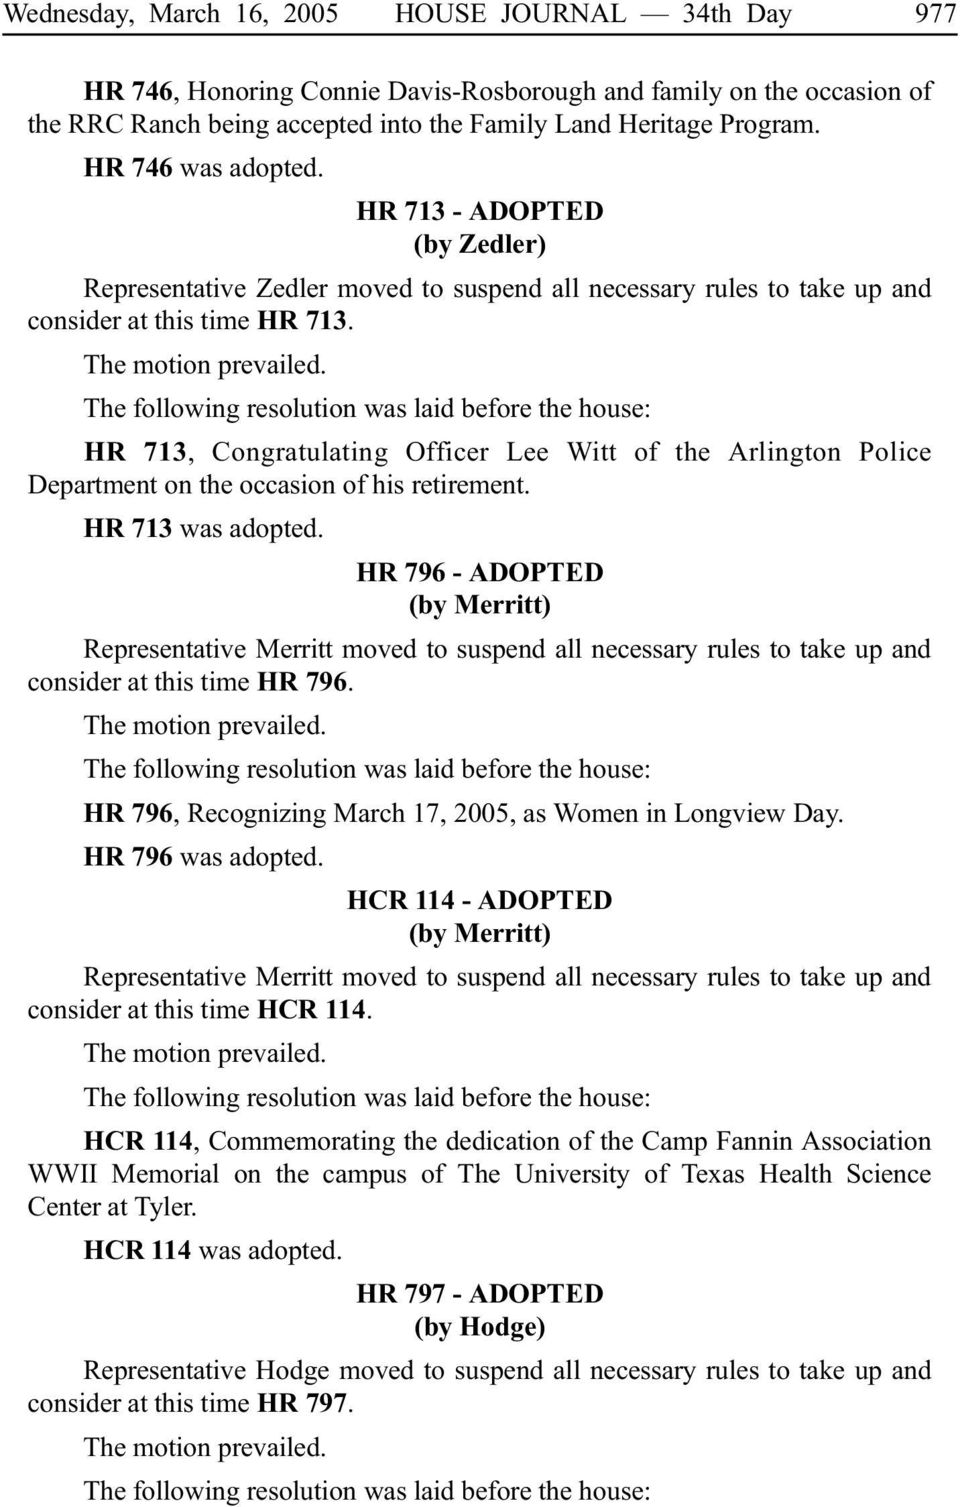 The following resolution was laid before the house: HR 713, Congratulating Officer Lee Witt of the Arlington Police Department on the occasion of his retirement. HR 713 was adopted.